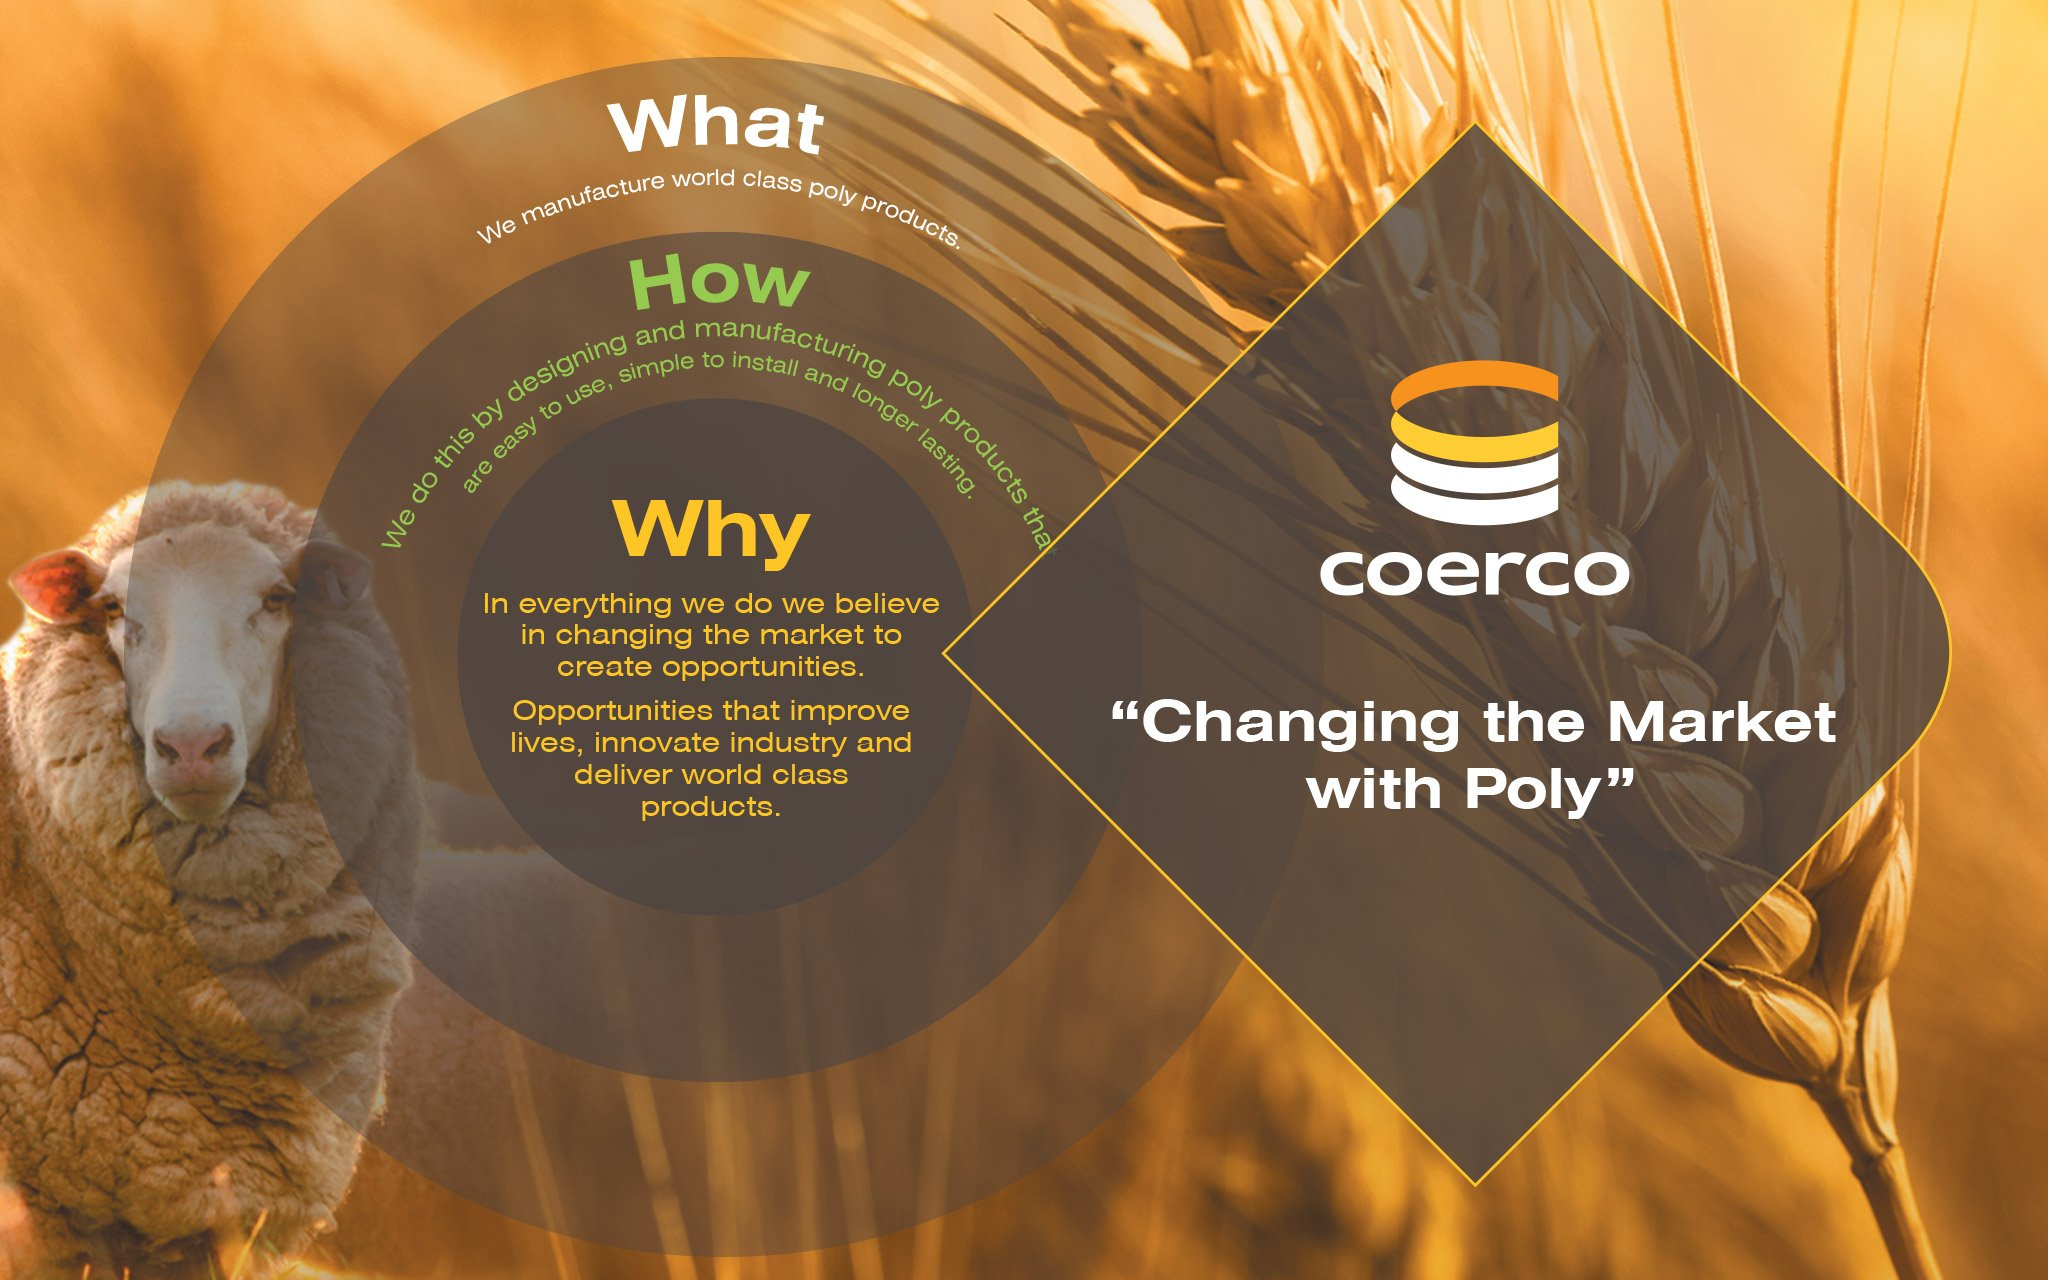 Coerco Why We Do What We Do